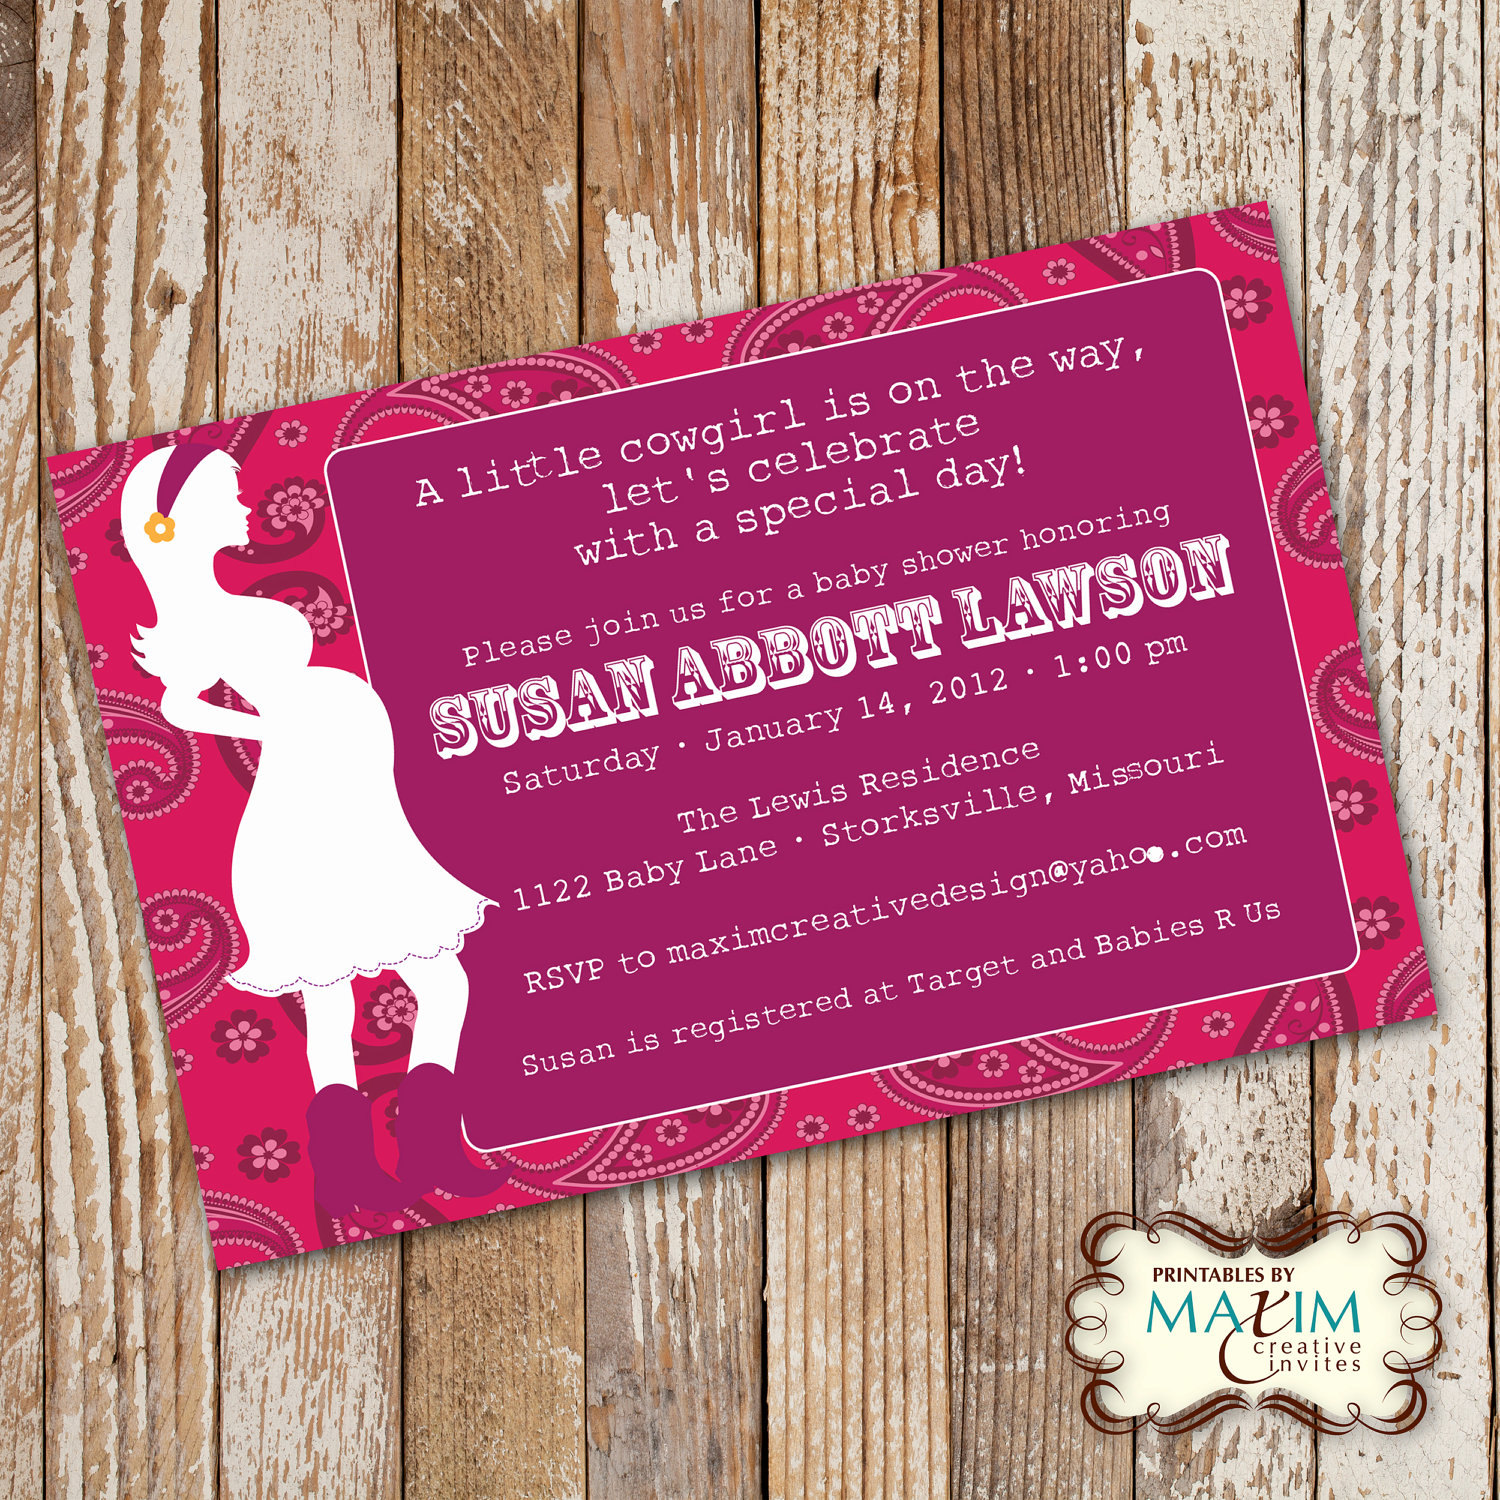 Baby Shower Invitation, Party Invitation, Cowgirl Baby Shower, Cowboy